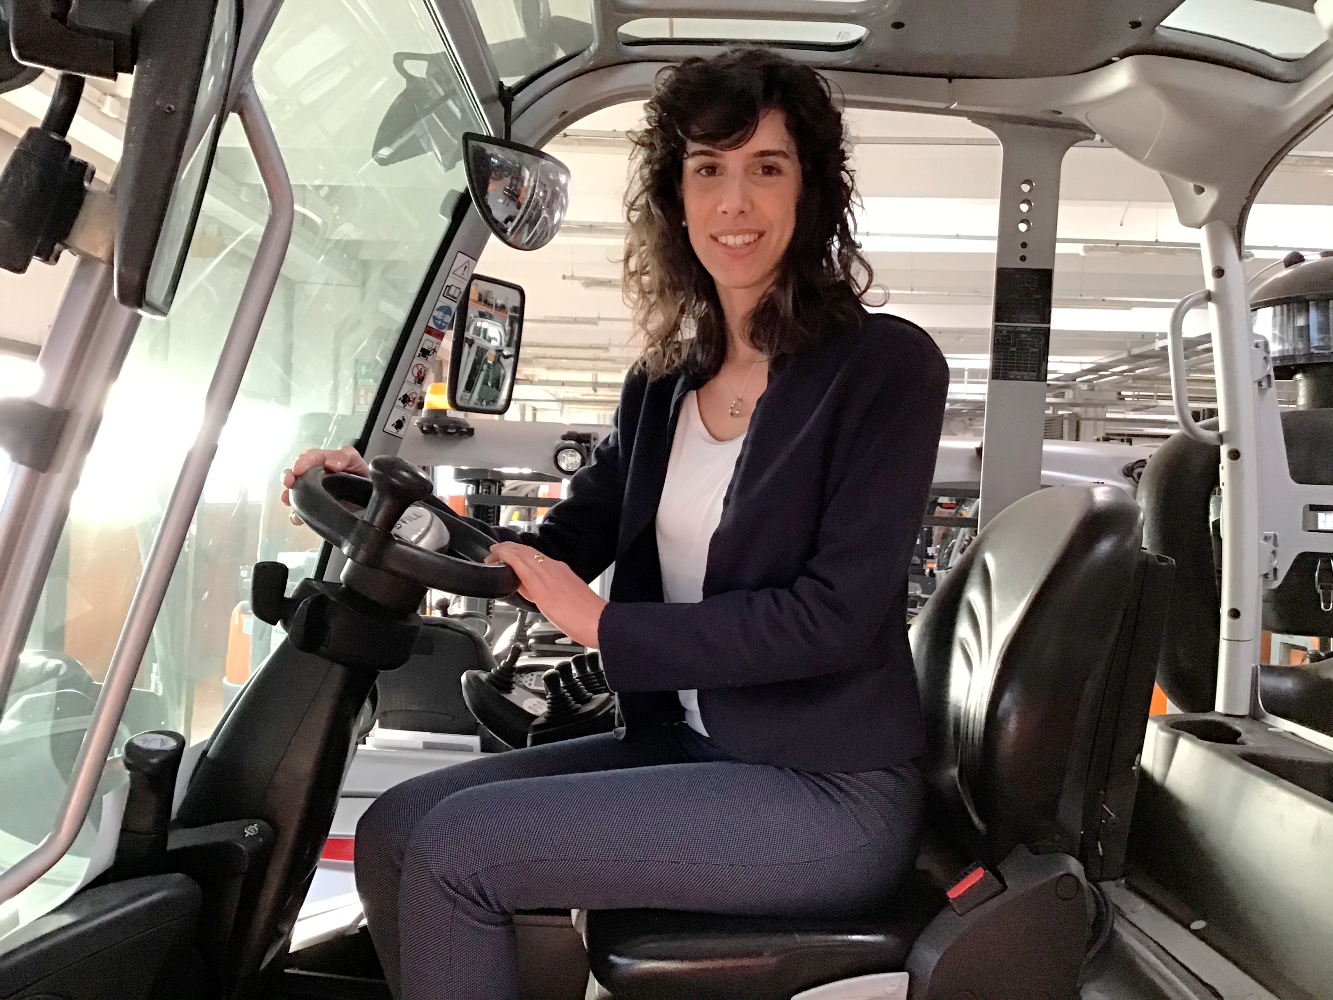 Claudia Tomboni, Responsabile Health, Safety & Environment di STILL in Italia